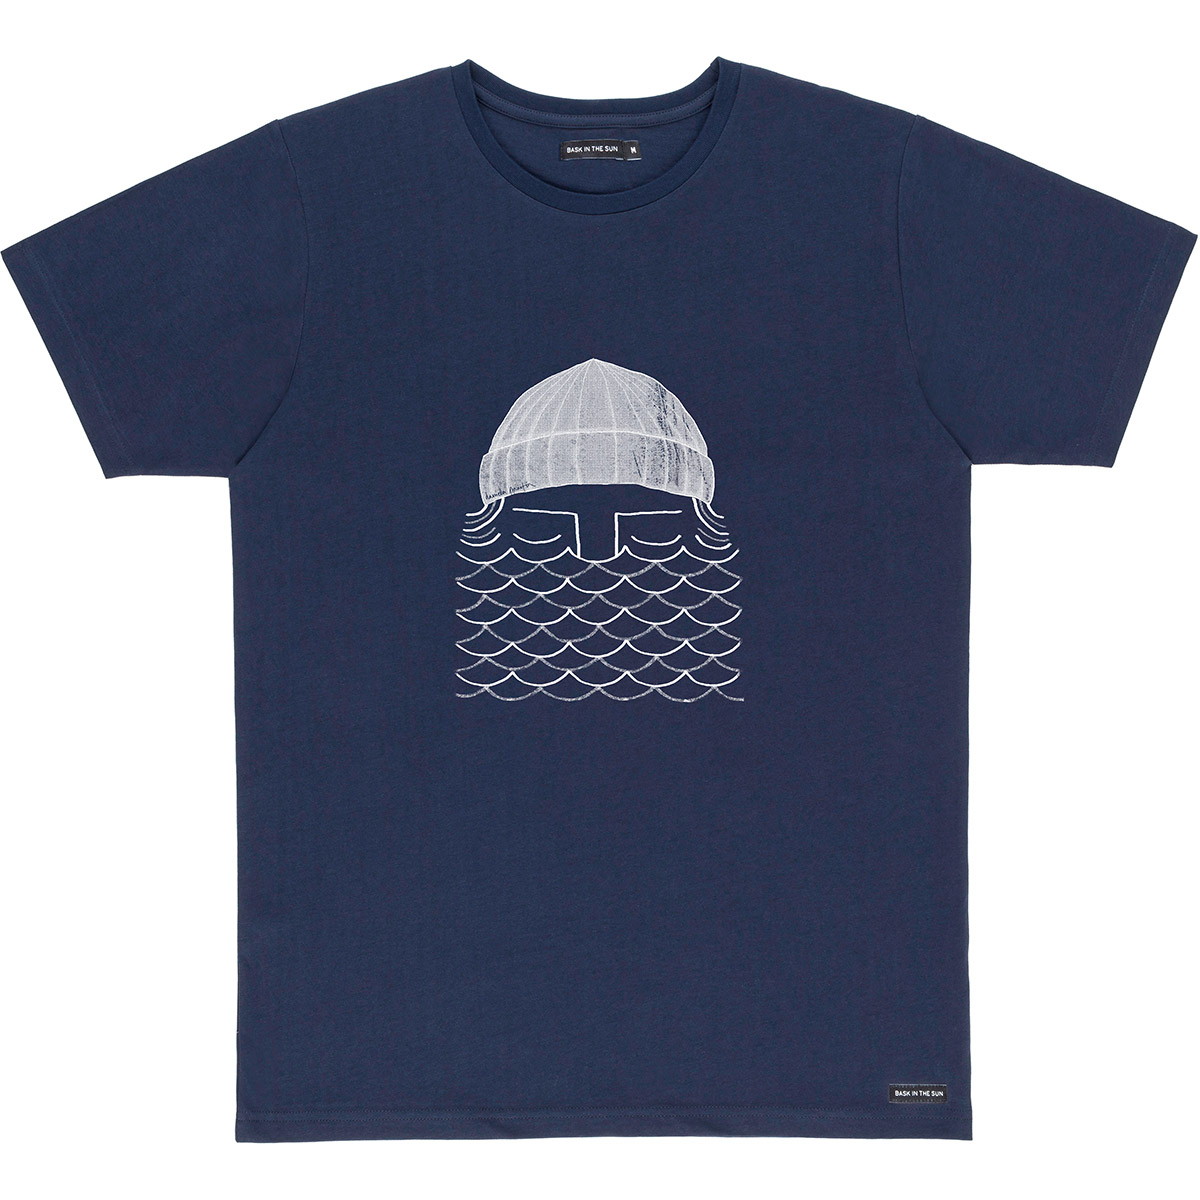 T-shirt en coton bio navy to the sea - Bask in the Sun num 0